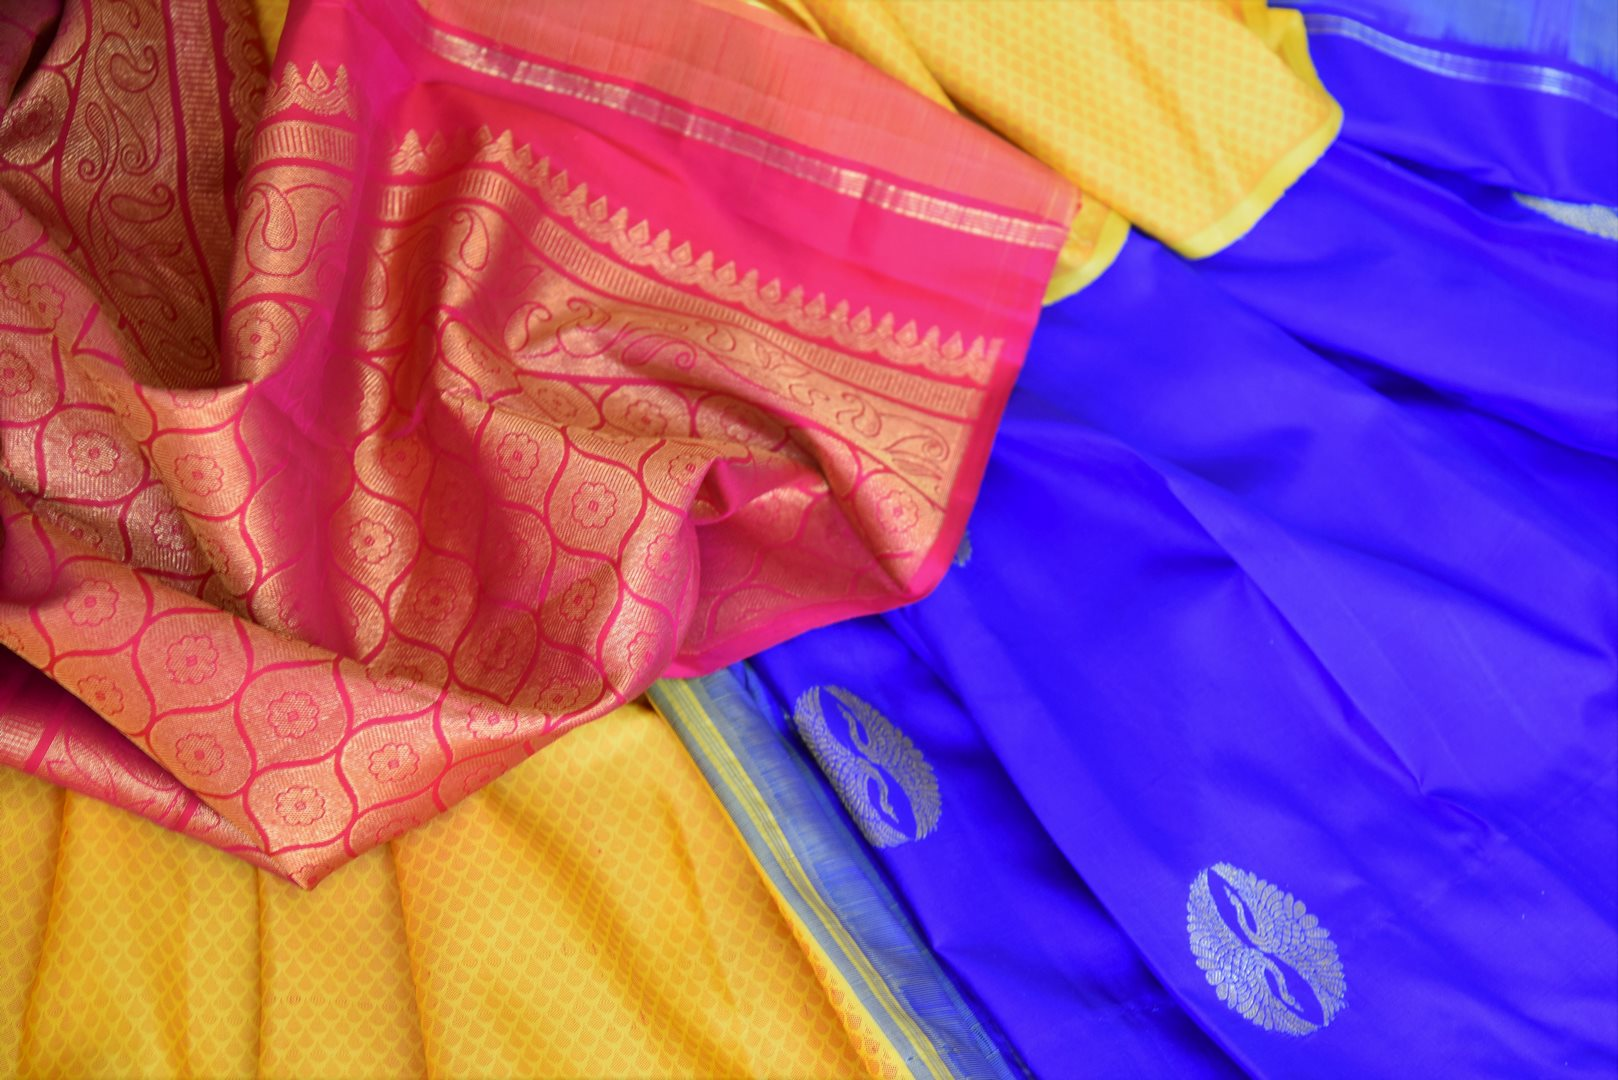 Buy online yellow and blue Kanchipuram silk saree in USA with pink zari pallu and zari buta.  For all the Indian women in USA who love Indian clothing and sarees, Pure Elegance clothing store in USA brings an exquisite collection of designer silk sarees, Kanjivaram sarees online and in their store. Shop now.-details